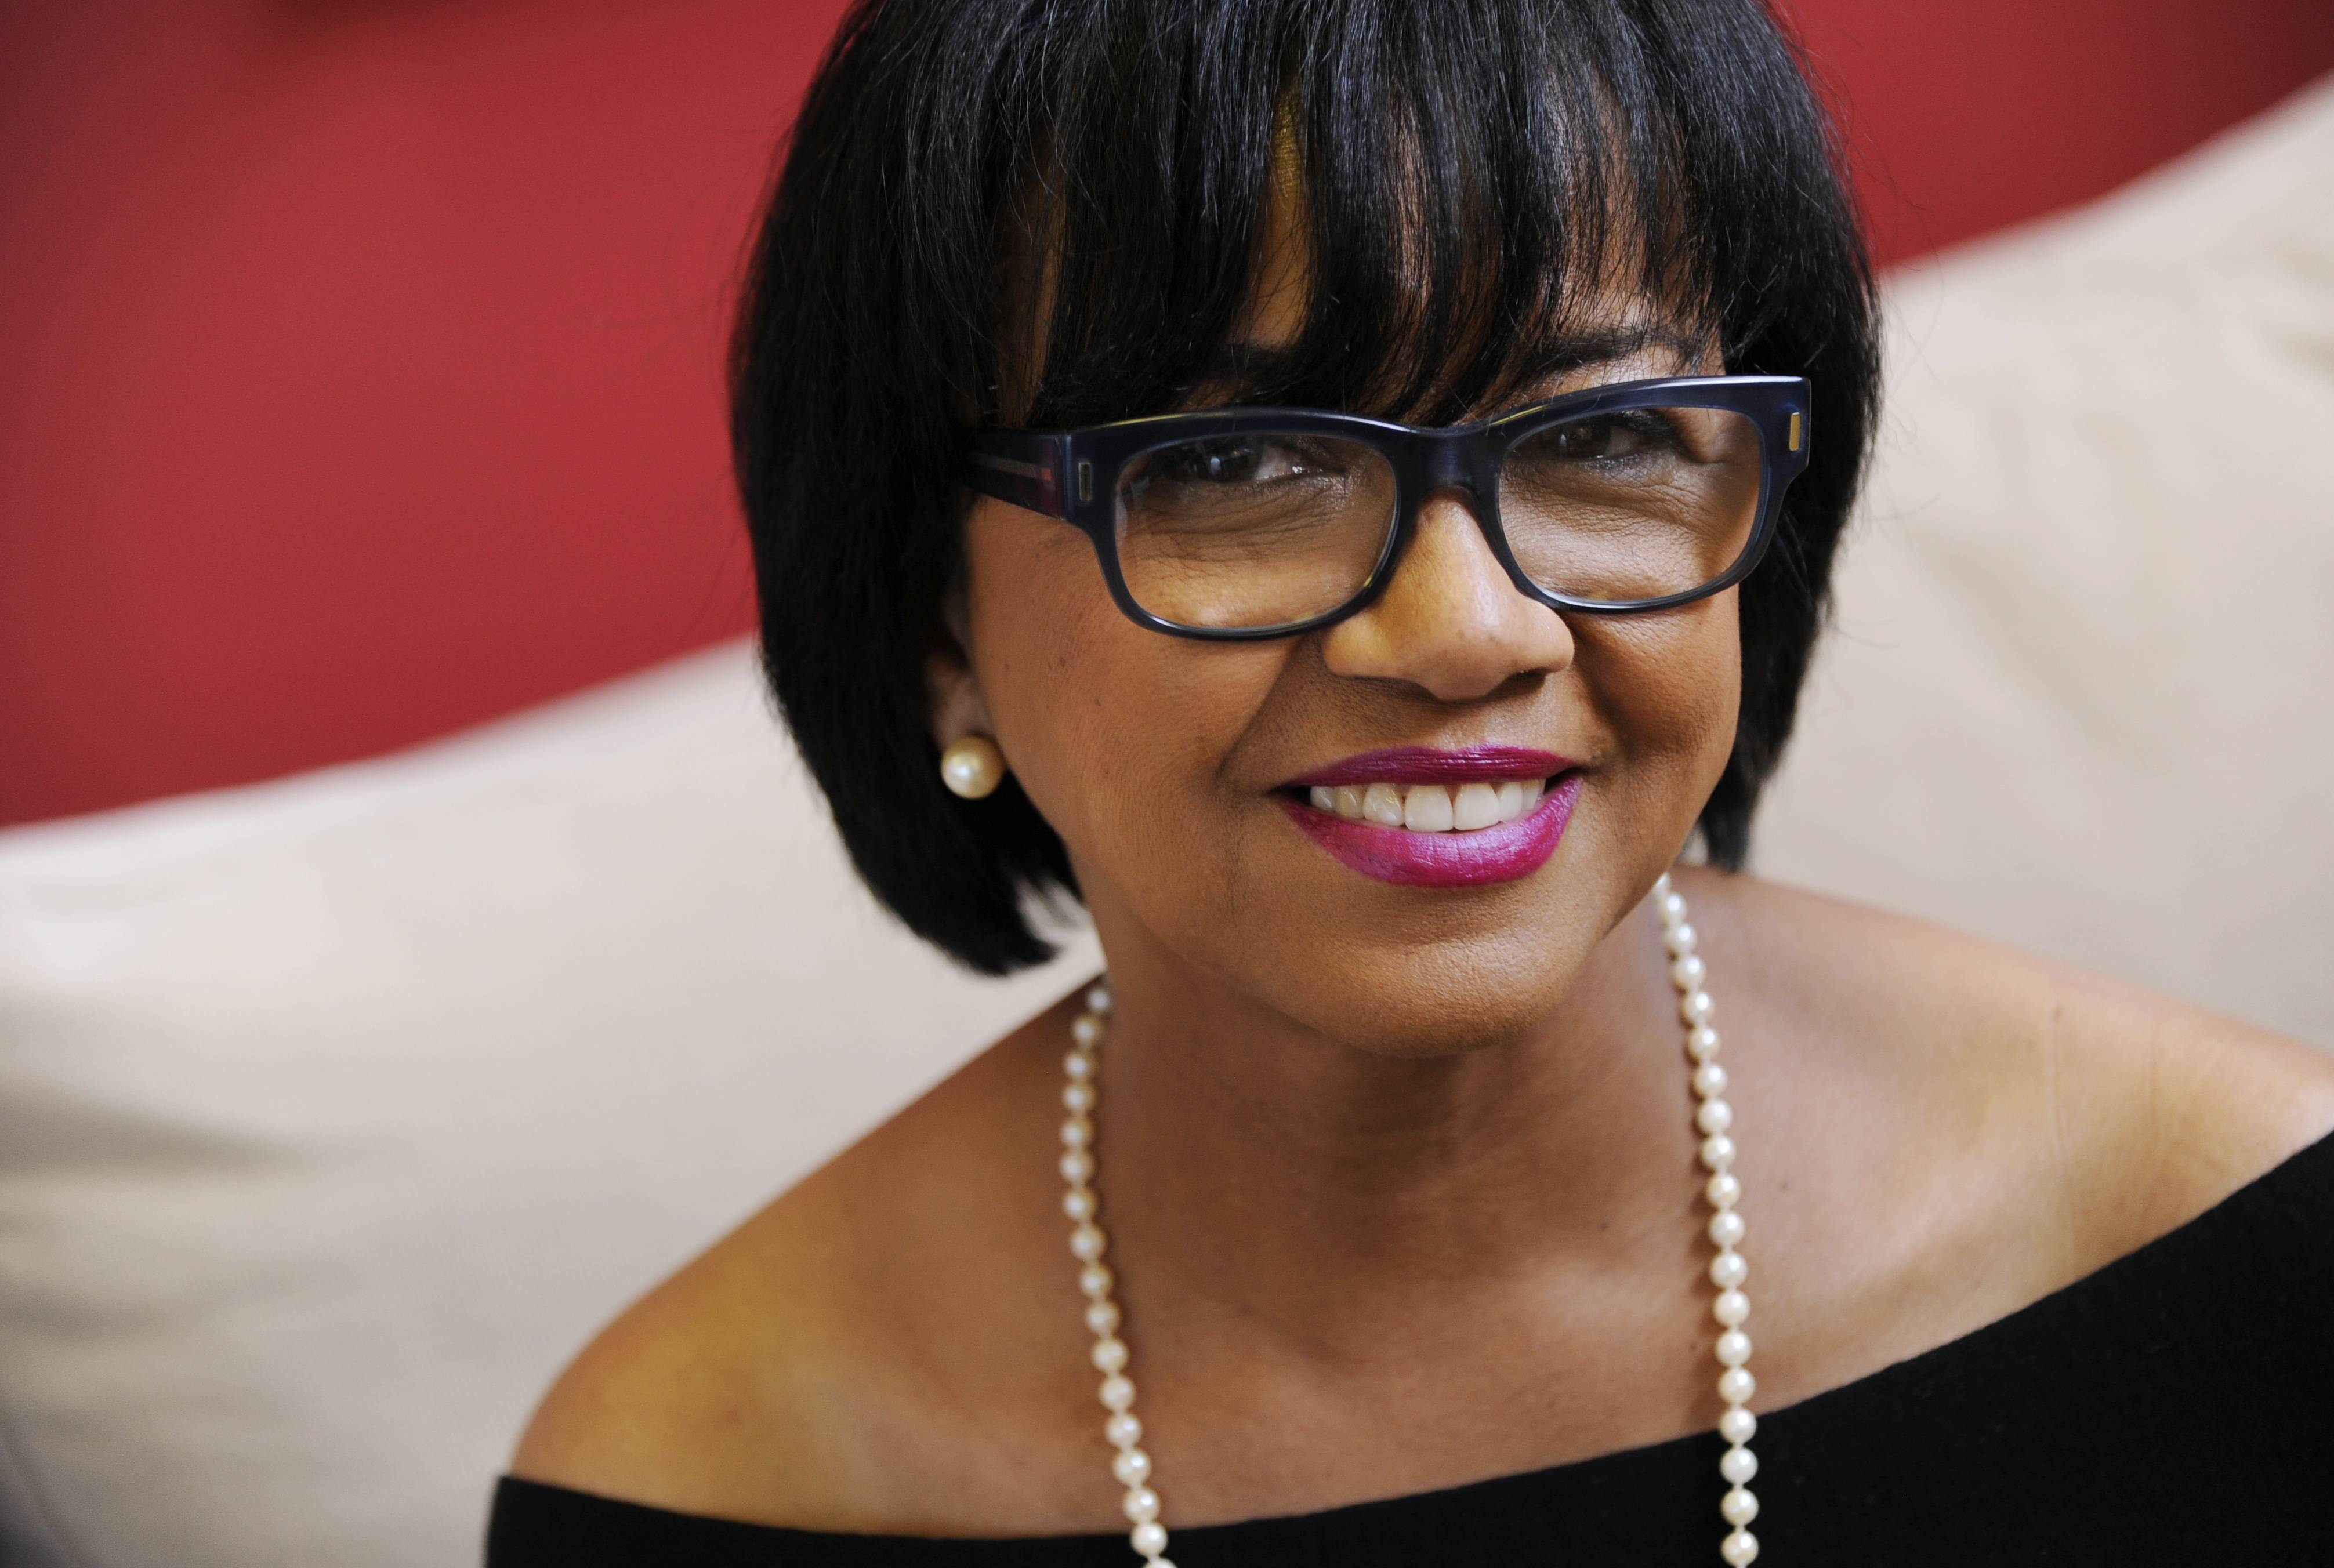 Cheryl Boone Isaacs has been re-elected for another year as president of the Academy of Motion Picture Arts and Sciences.